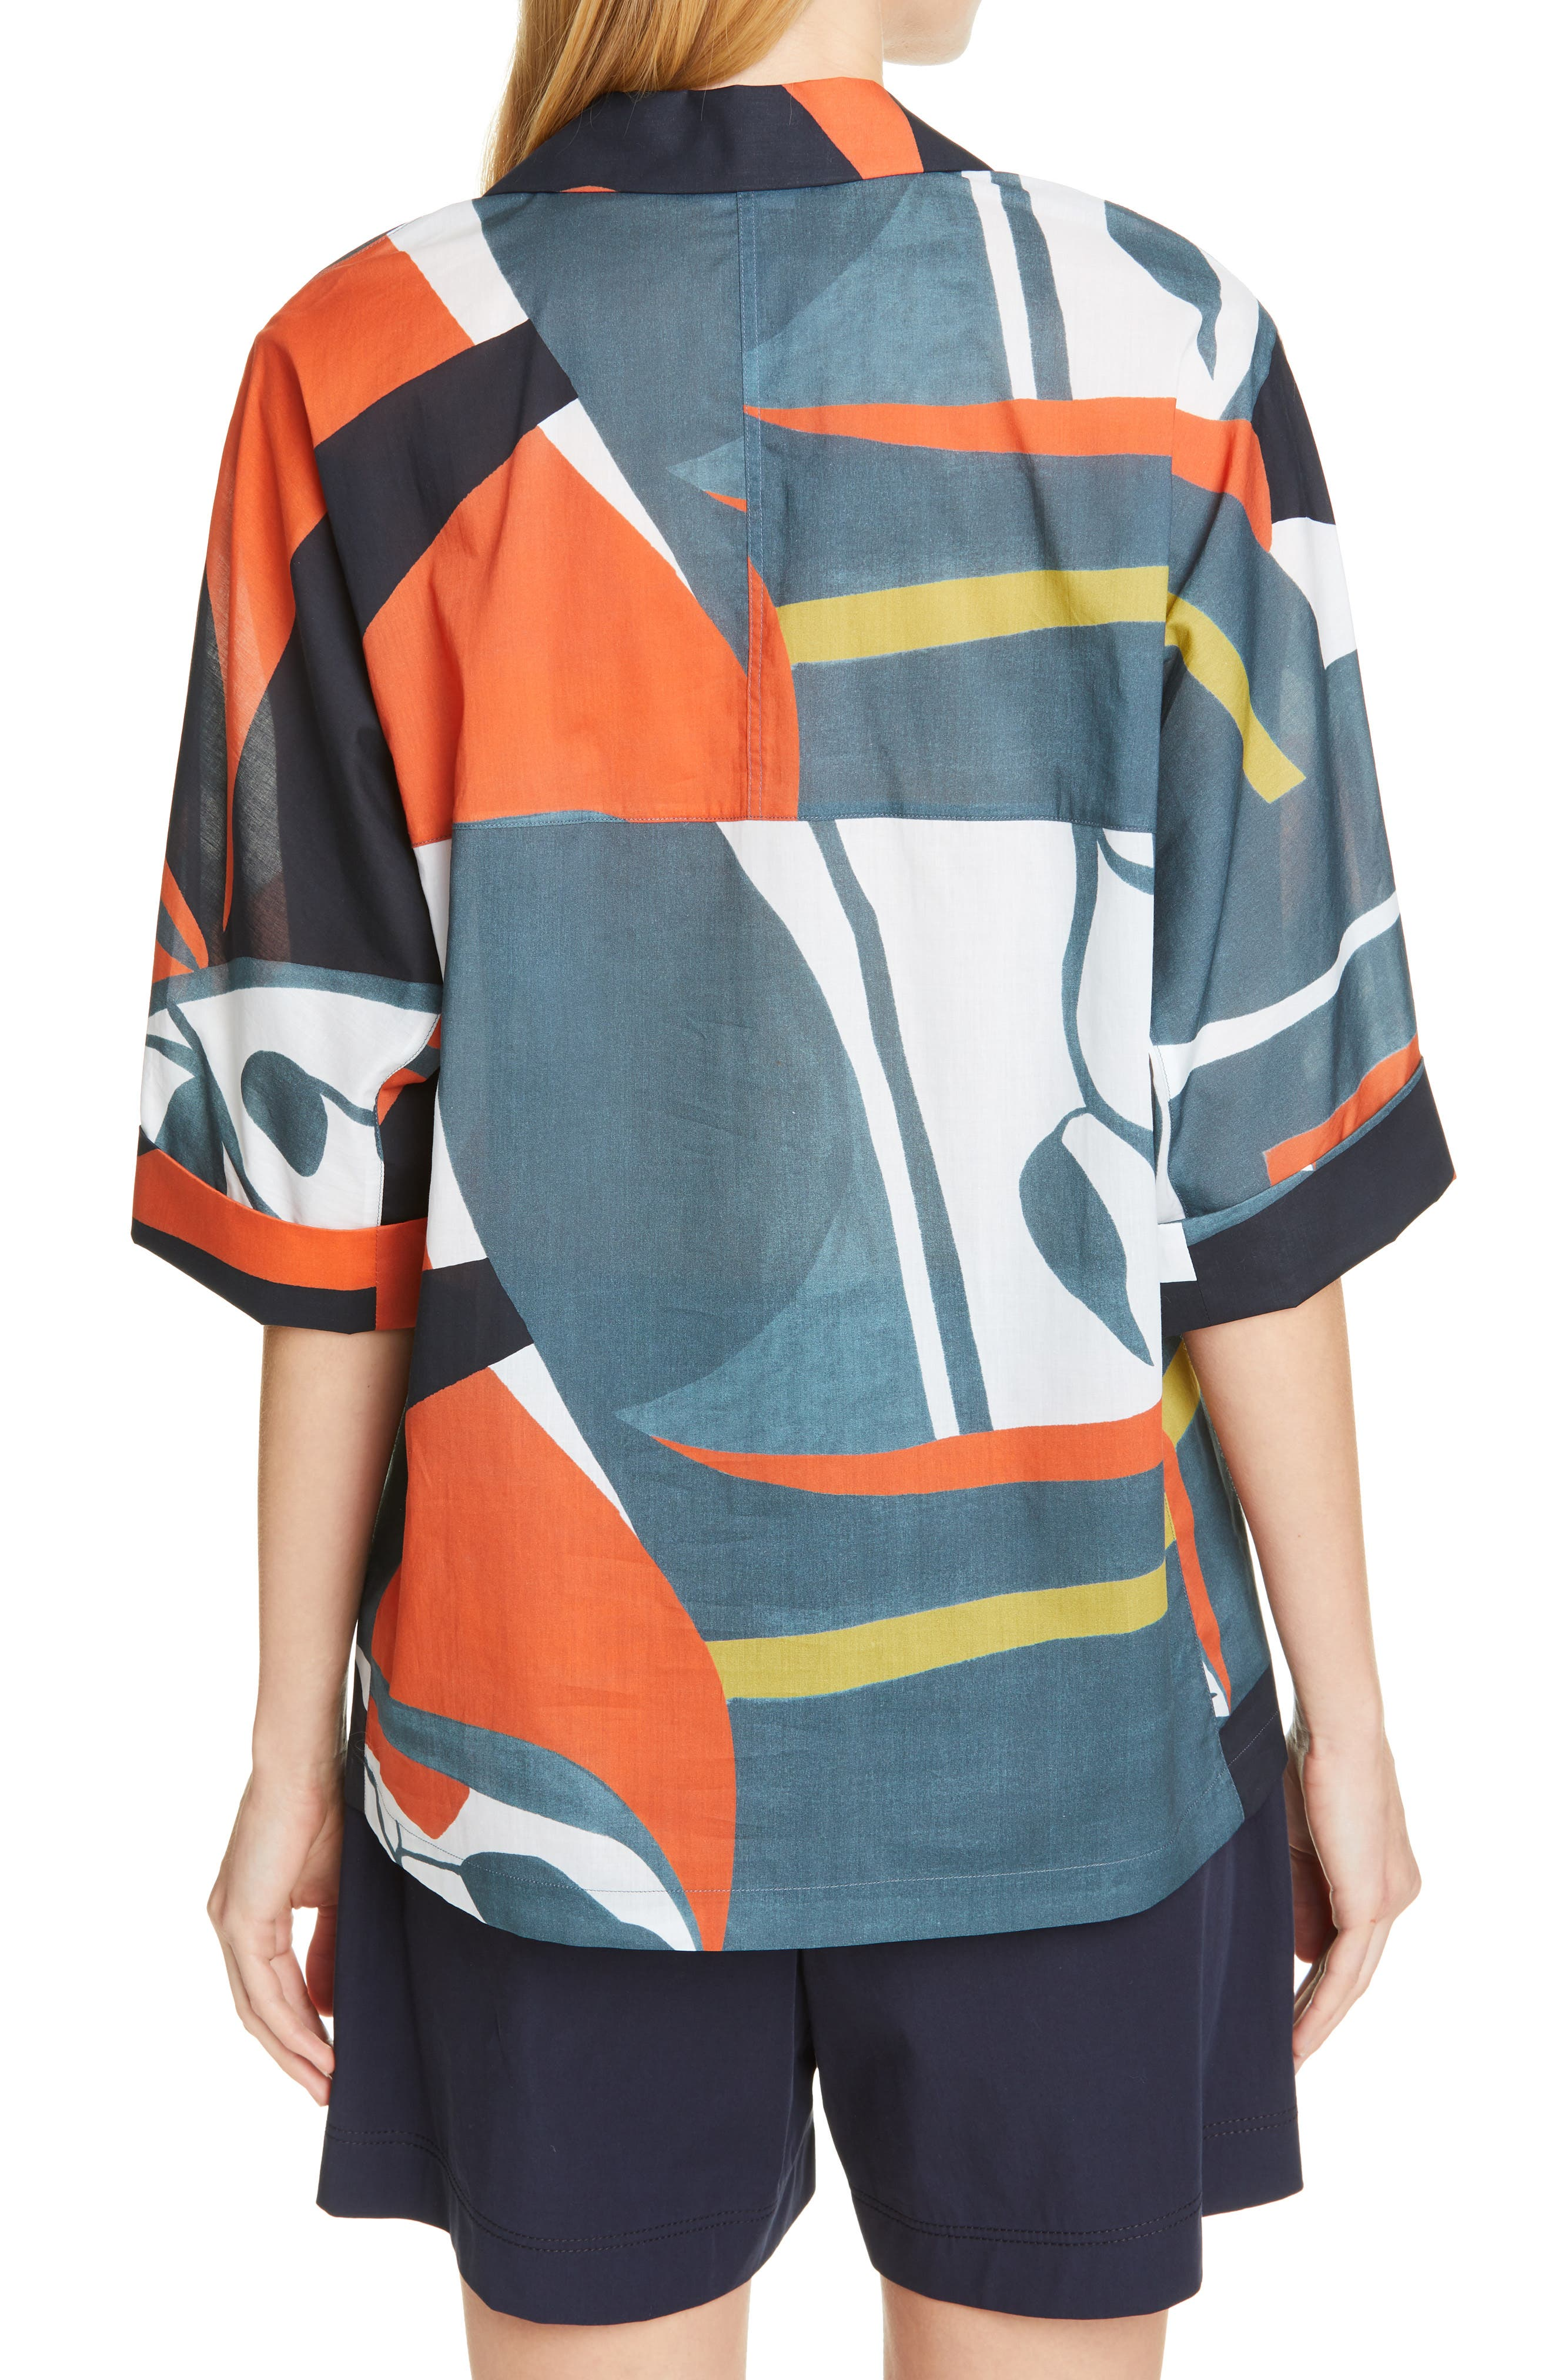 LAFAYETTE 148 NEW YORK, Nicole Artisan Abstract Print Top, Alternate thumbnail 2, color, ATLANTIS TEAL MULTI